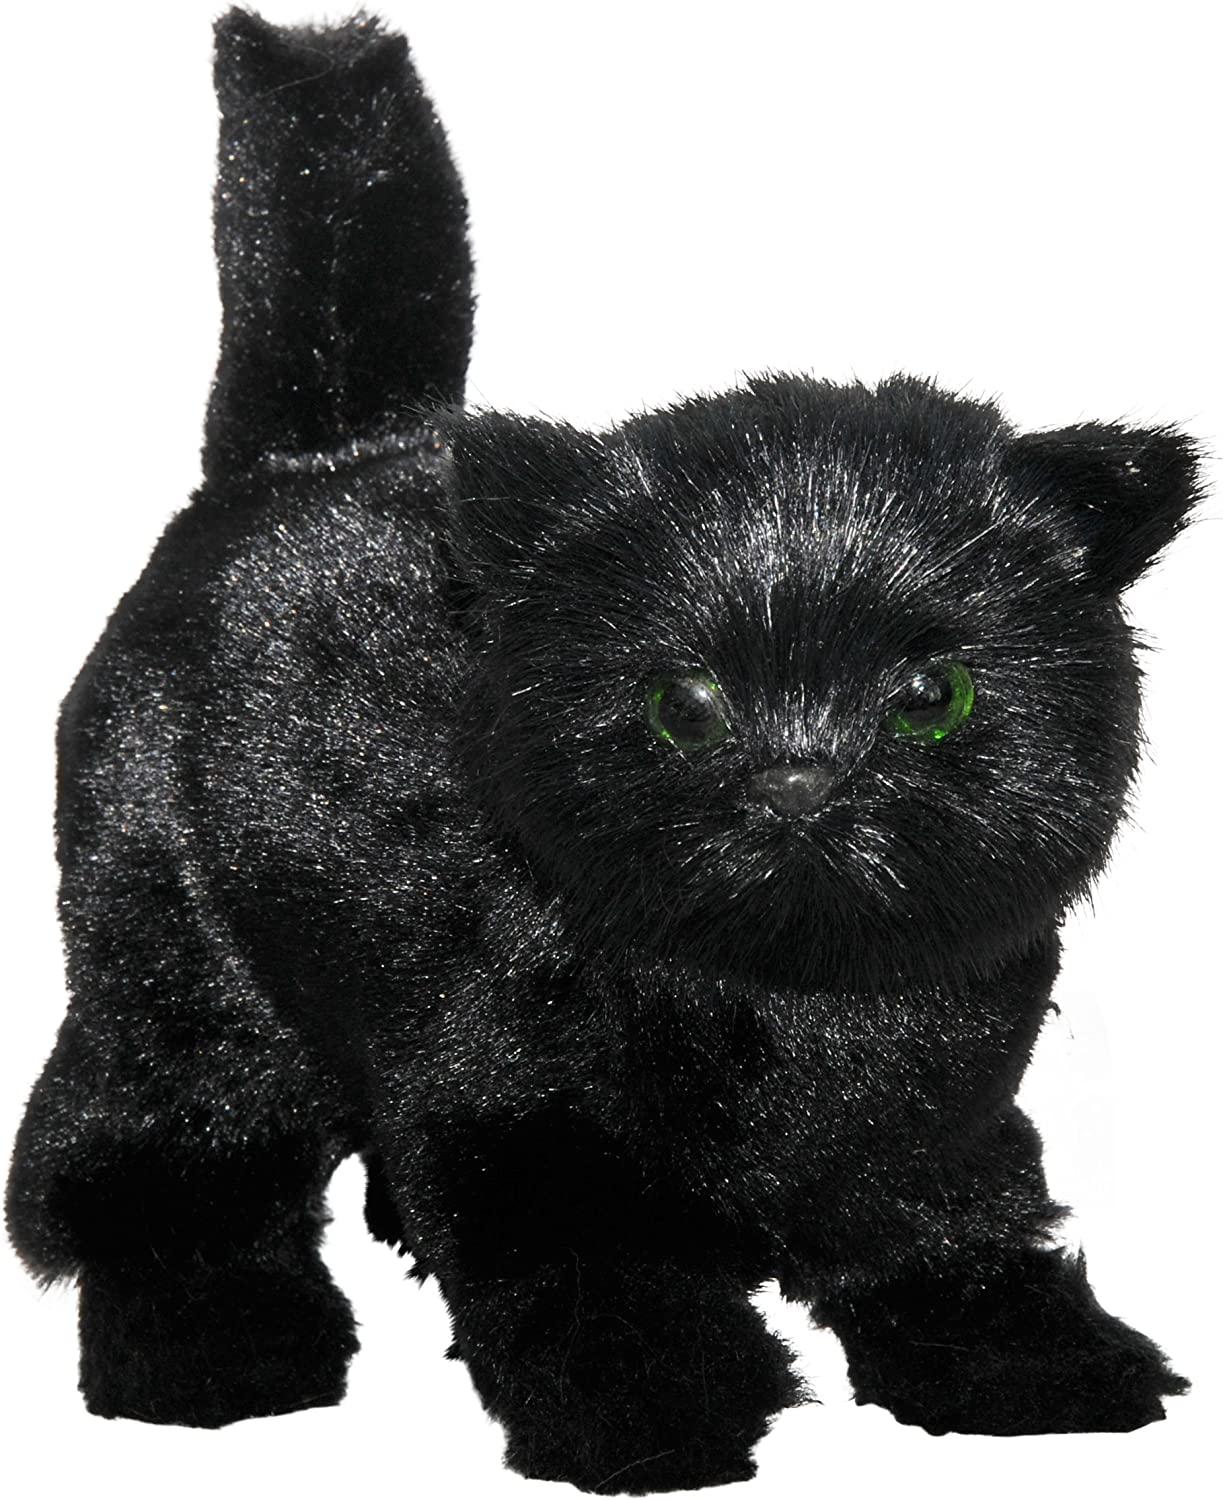 AWSOM Pets  Black Kitty Sized for Your 18 inch Doll. The Queen's Treasures Black Cat is the Perfect Furry Companion Doll Toy. Friend for your American Girl Doll and other 18 inch dolls  by The Queen's Treasures